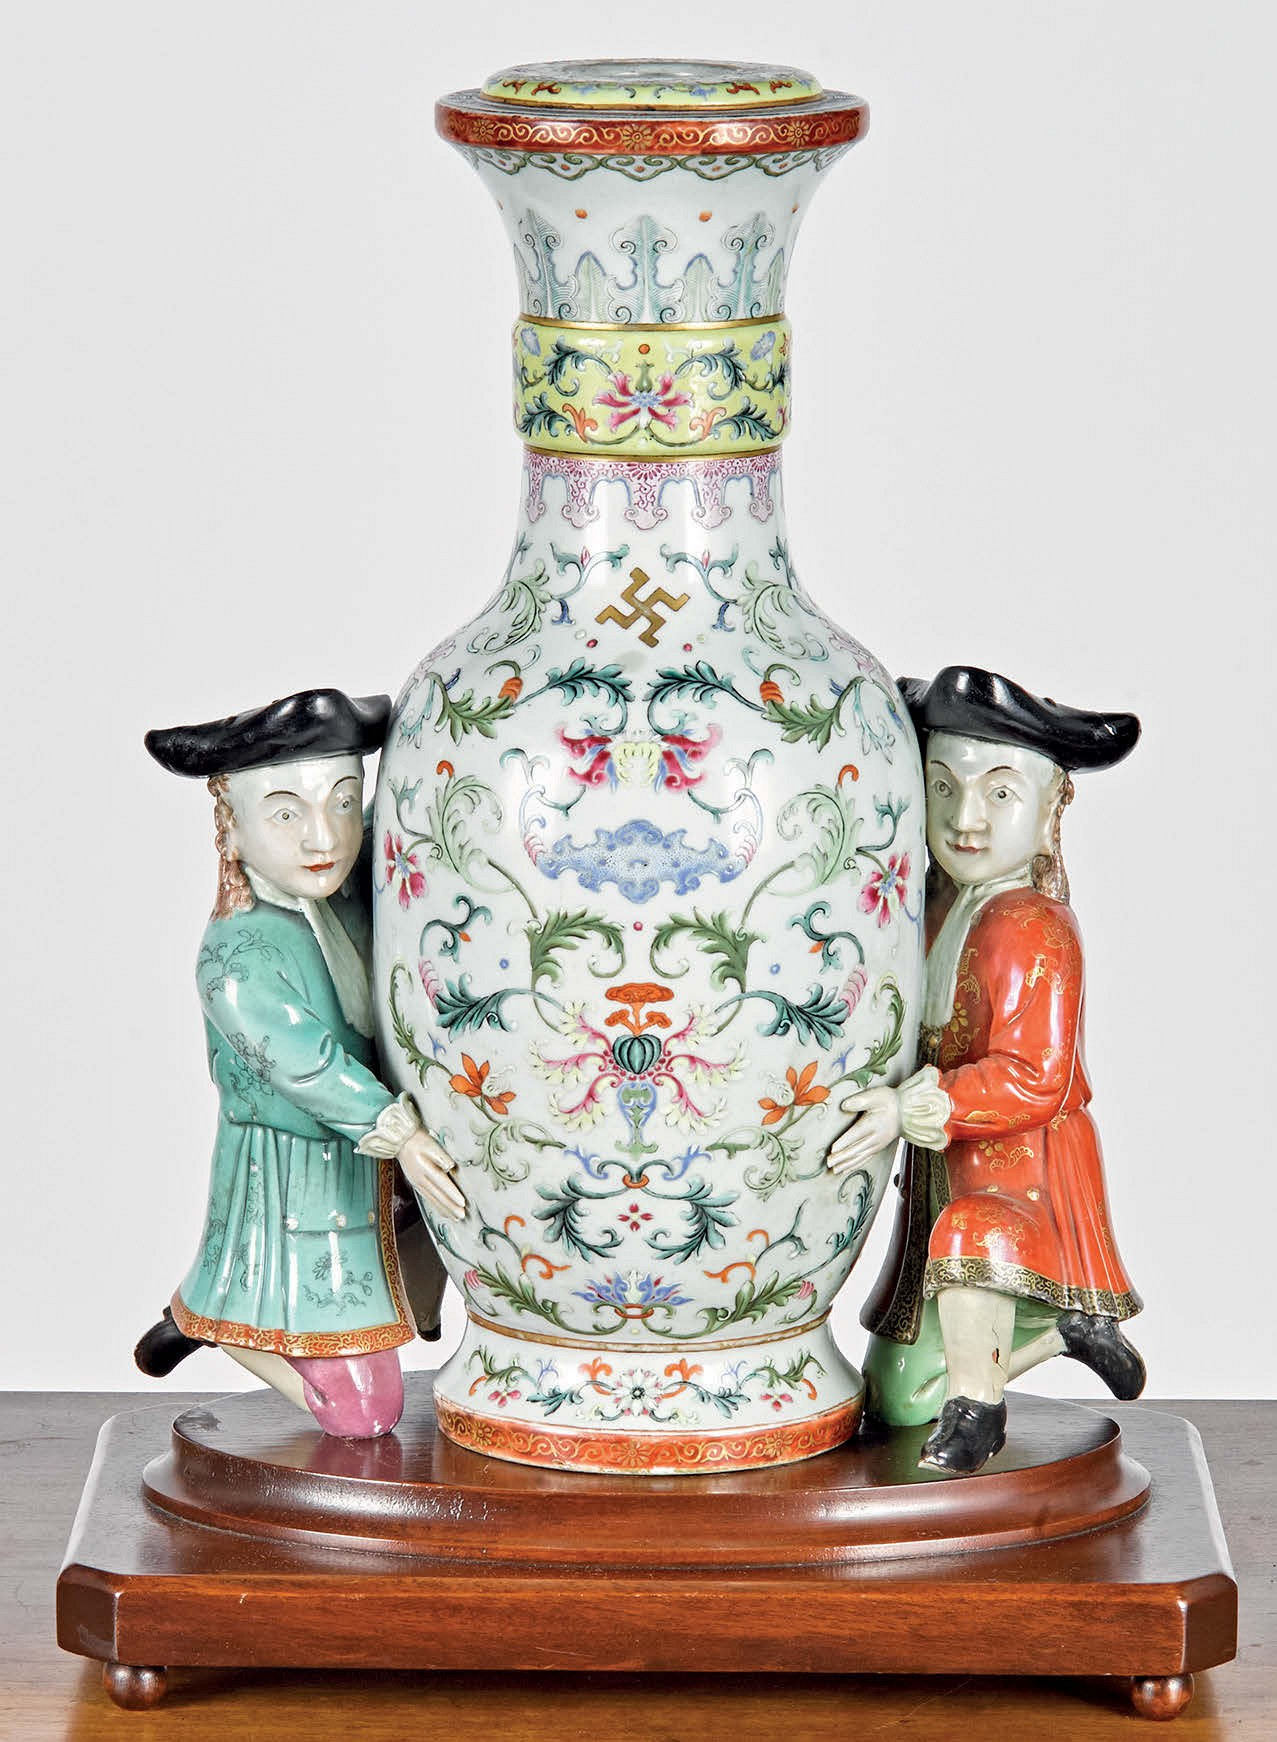 Double Dutch! Qianlong Vase Sells For $270,000